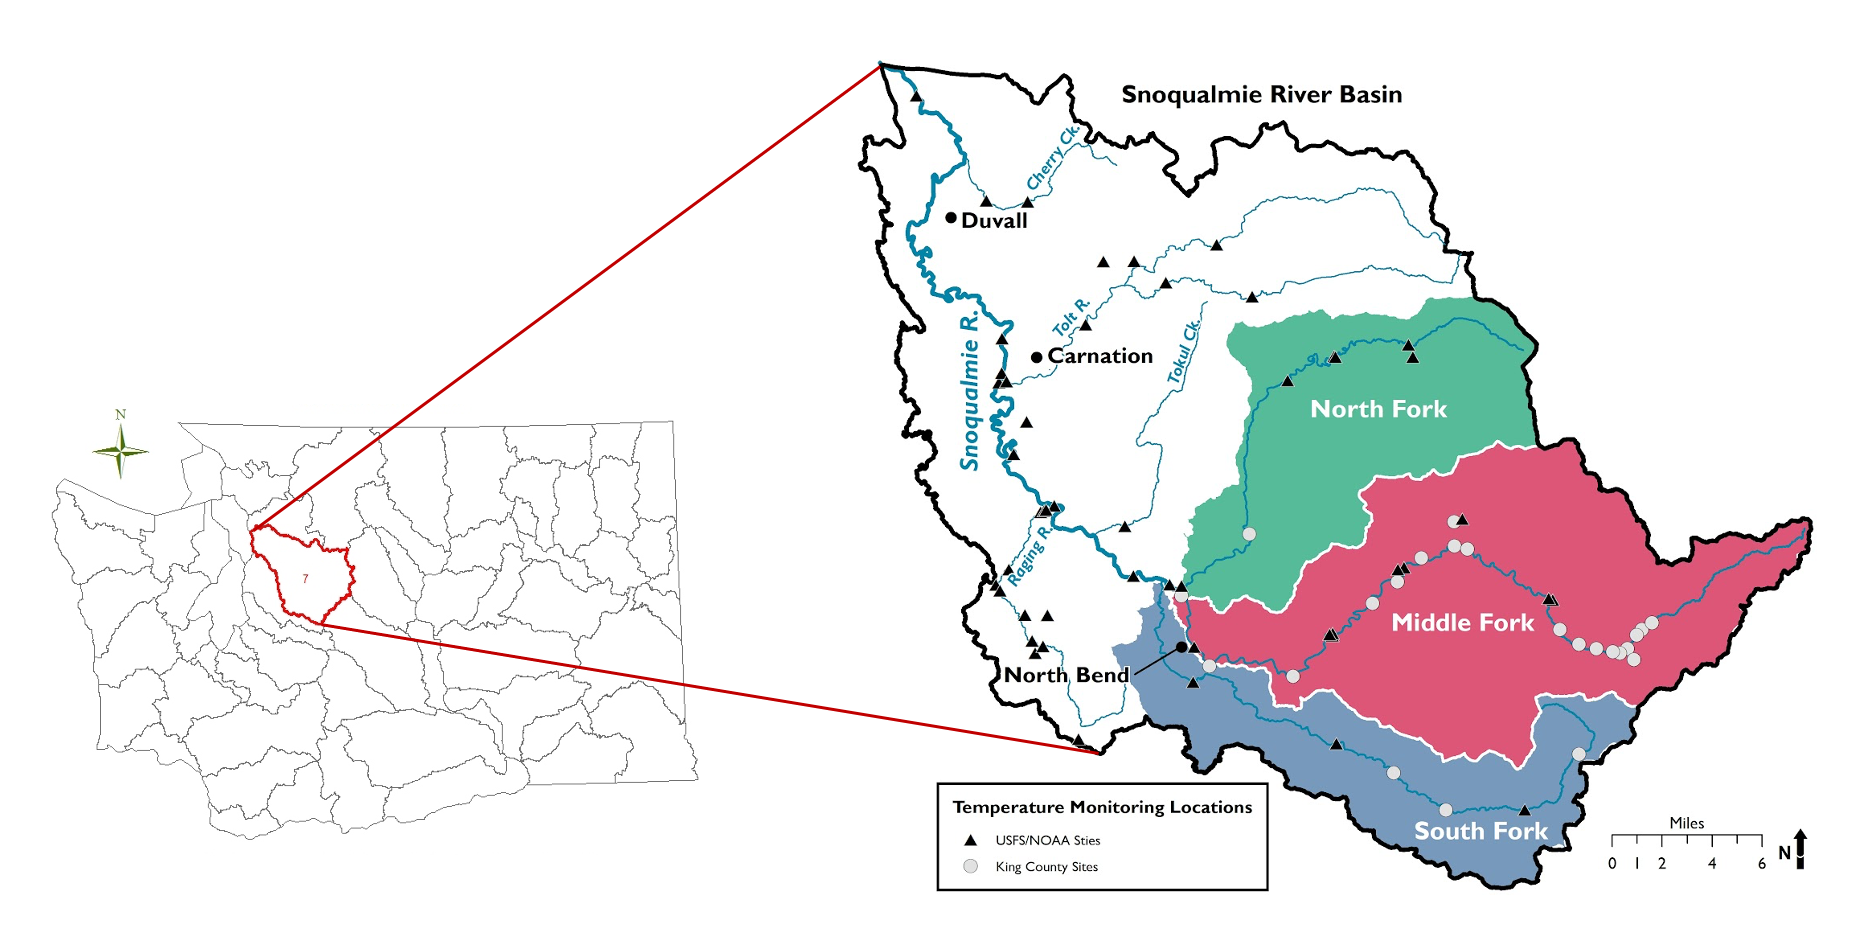 Location of Snoqualmie River basin in Washington (left) and map of water temperature monitoring sites in the basin (right). Map: SnoSCAT